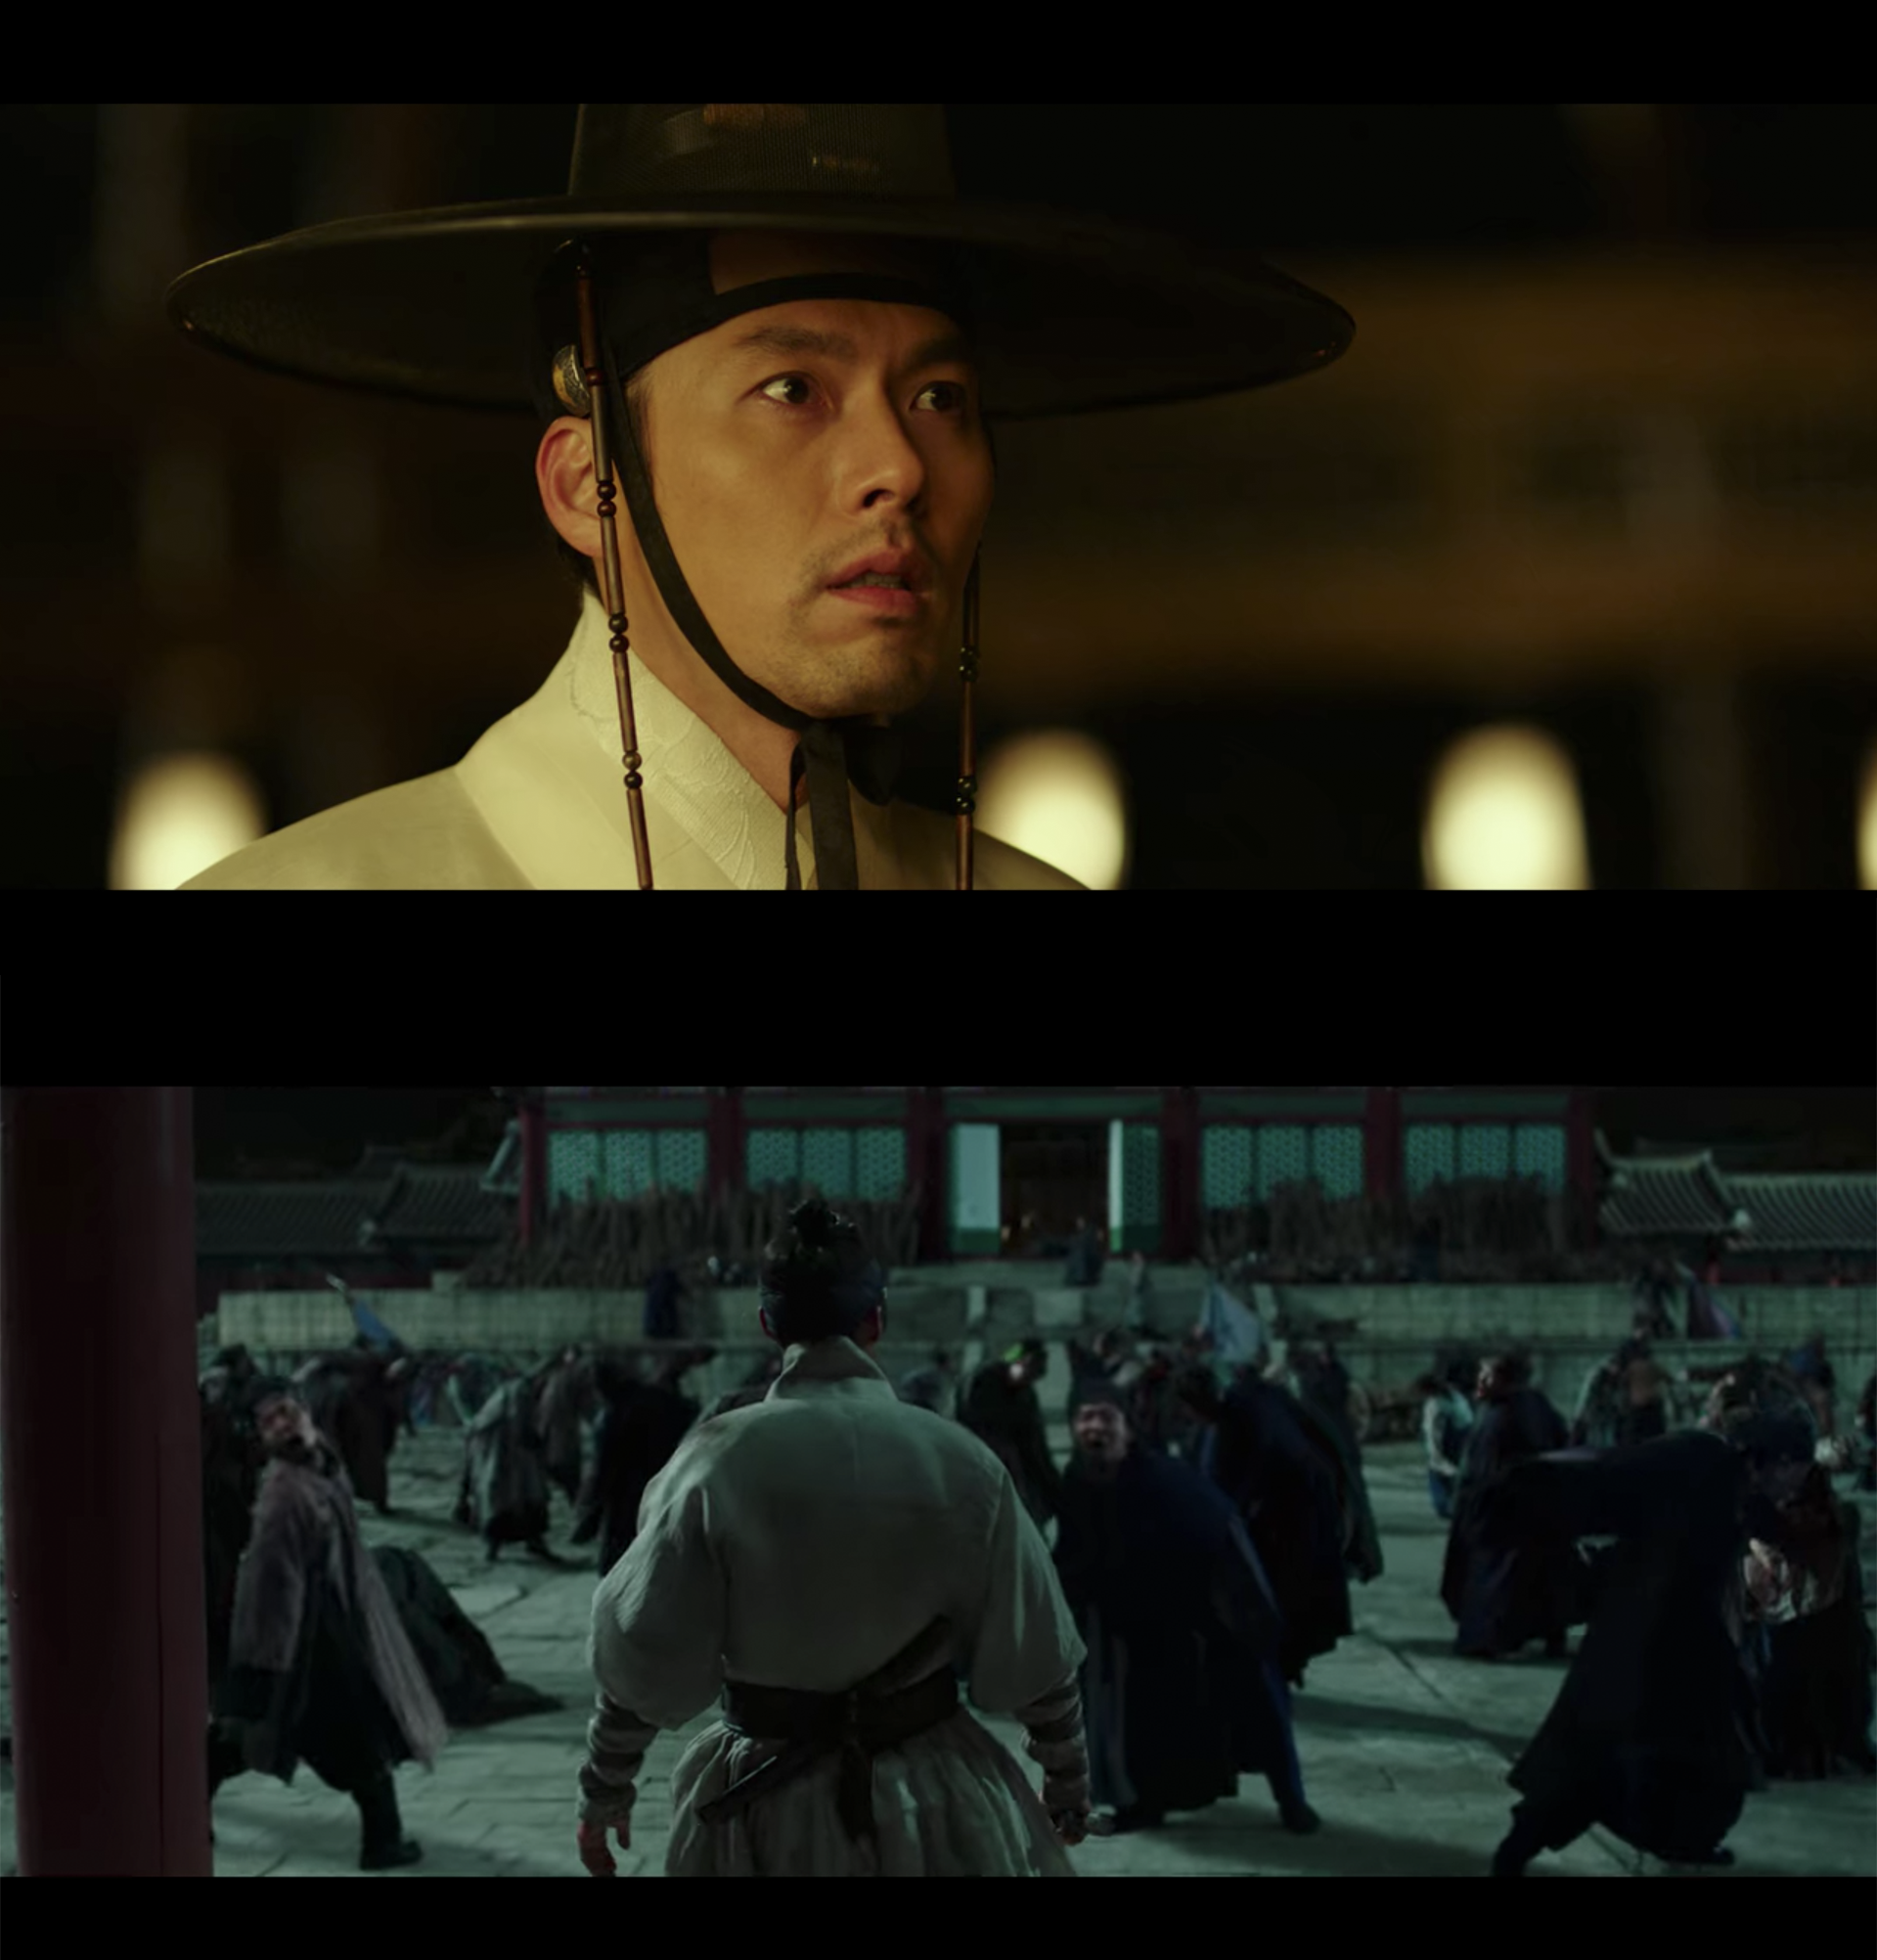 zombies in a korean palace in the joseon dynasty from the korean movie rampant